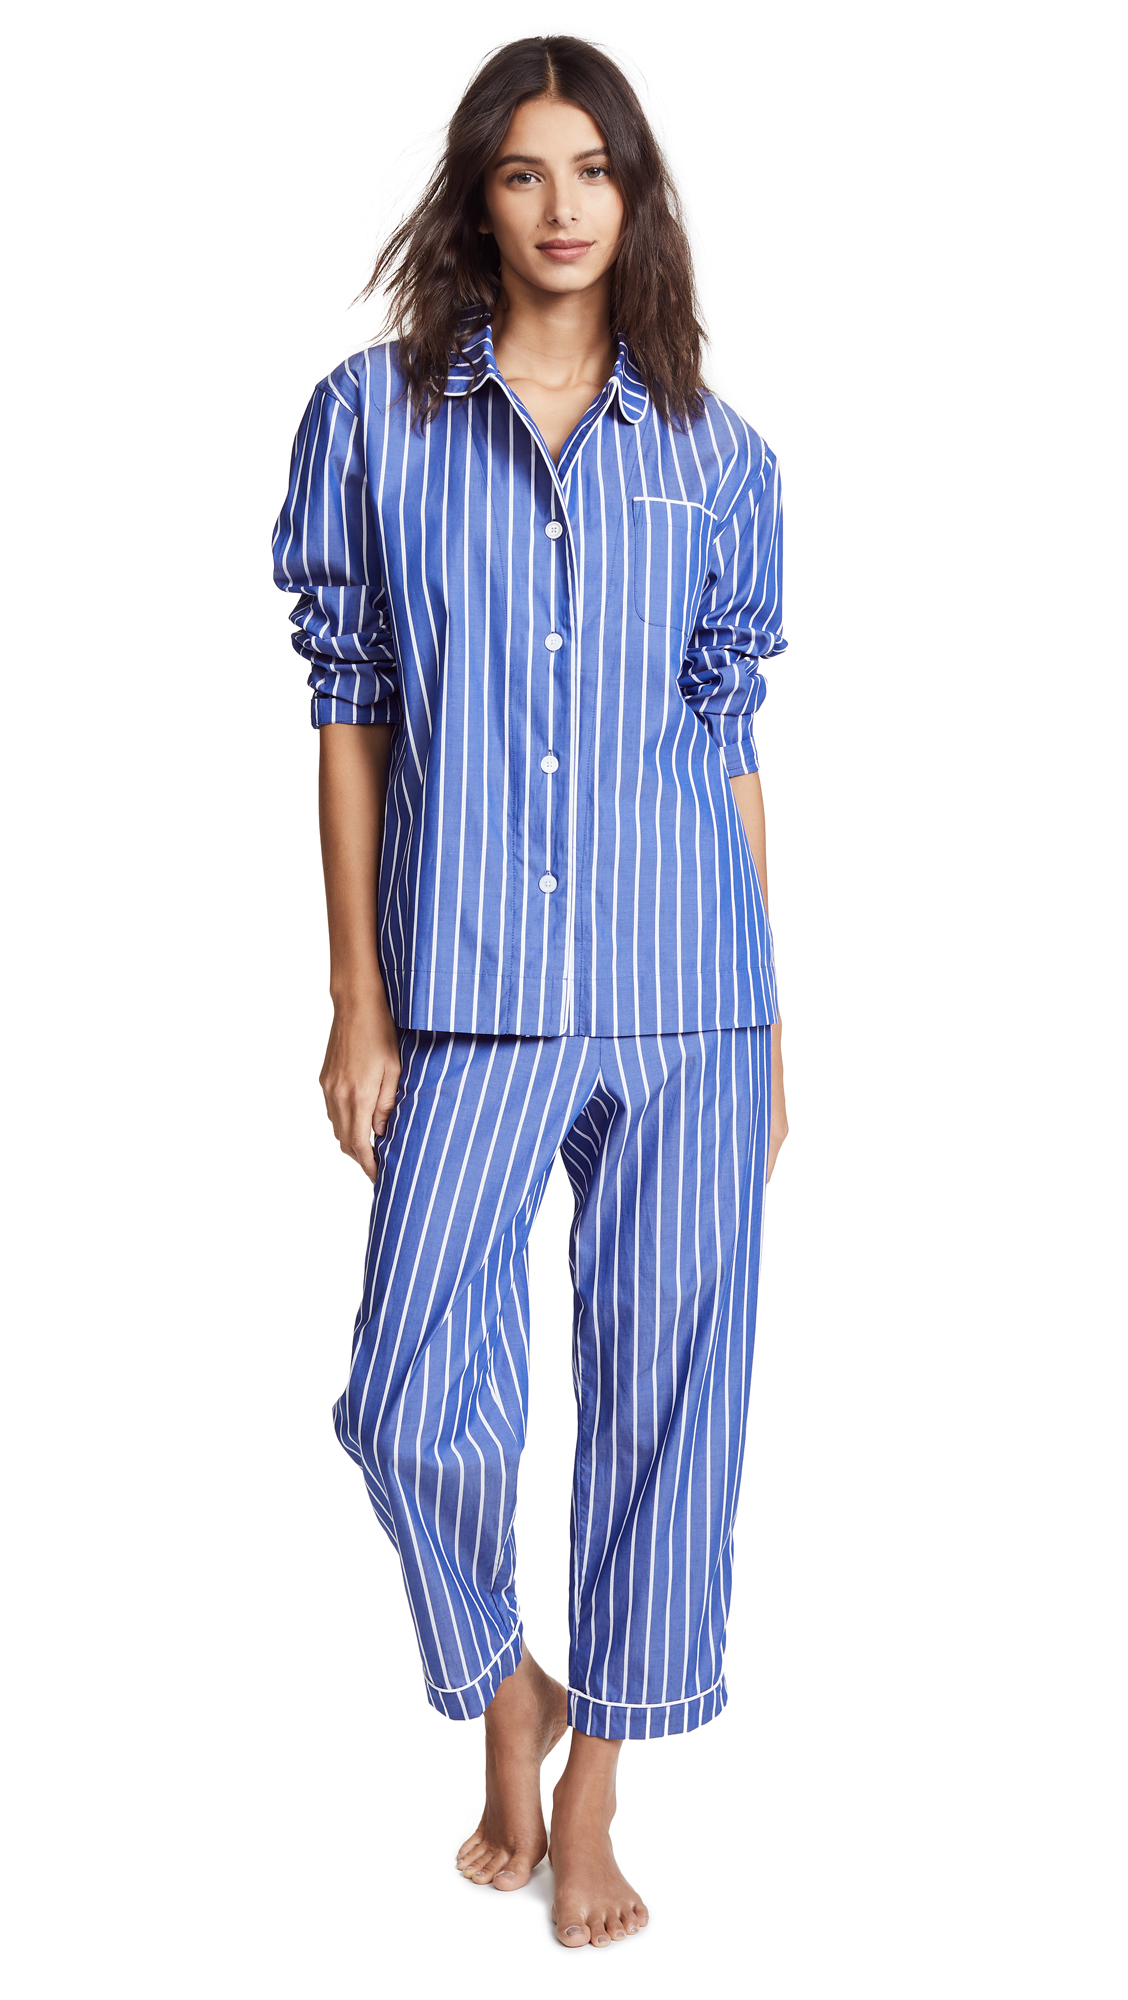 Sleepy Jones Bishop PJ Set In Tie Stripe Blue & White